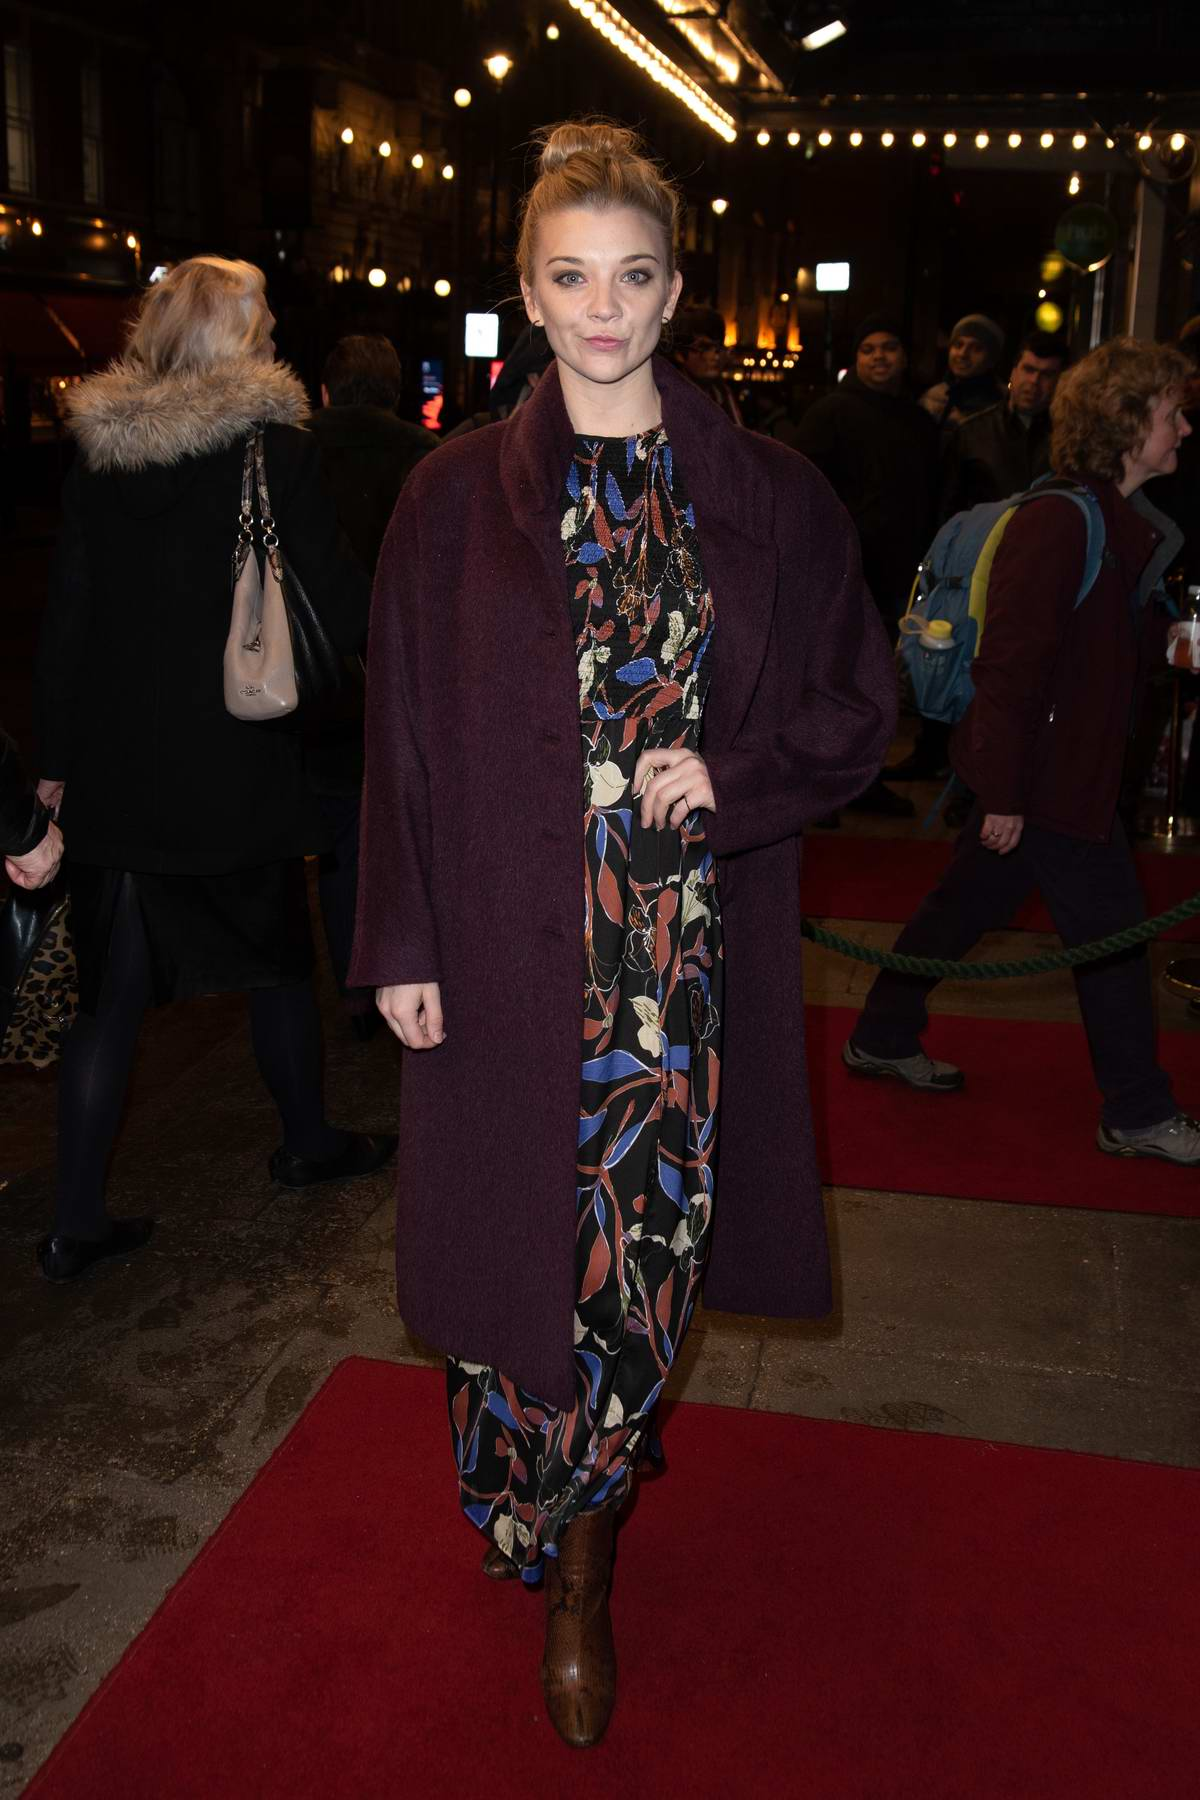 Natalie Dormer attends the press night after party for 'Home, I'm Darling' at Browns in London, UK